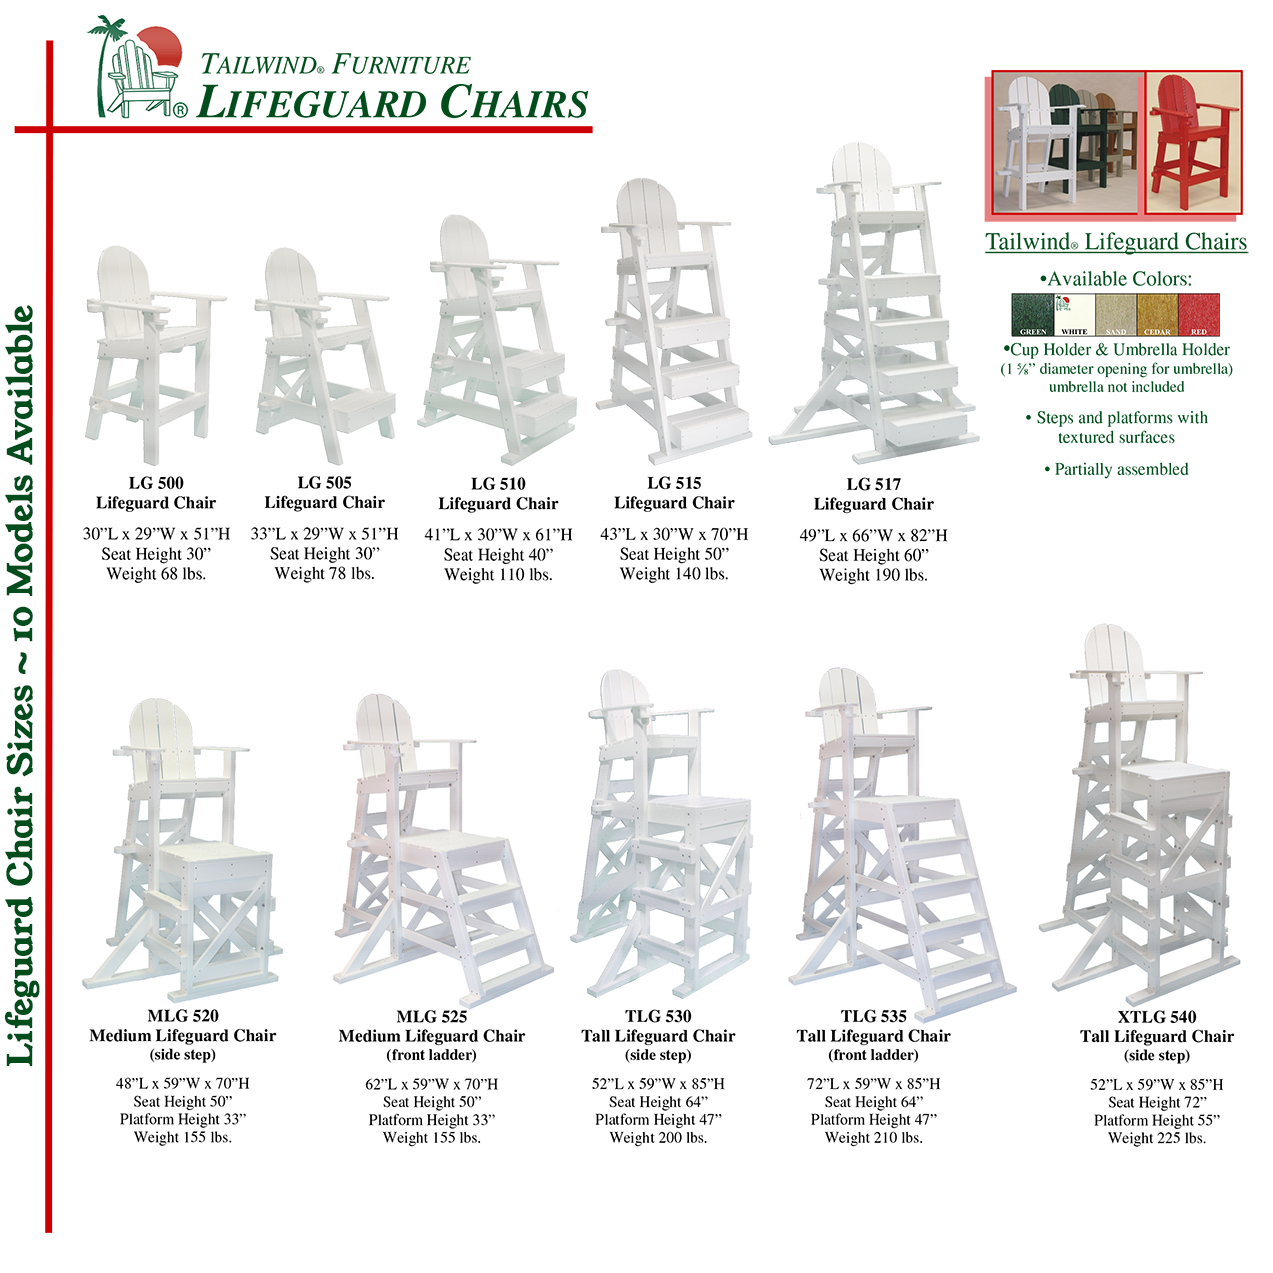 Lifeguard Chairs Sizes - Lifeguard Chair Sizes.